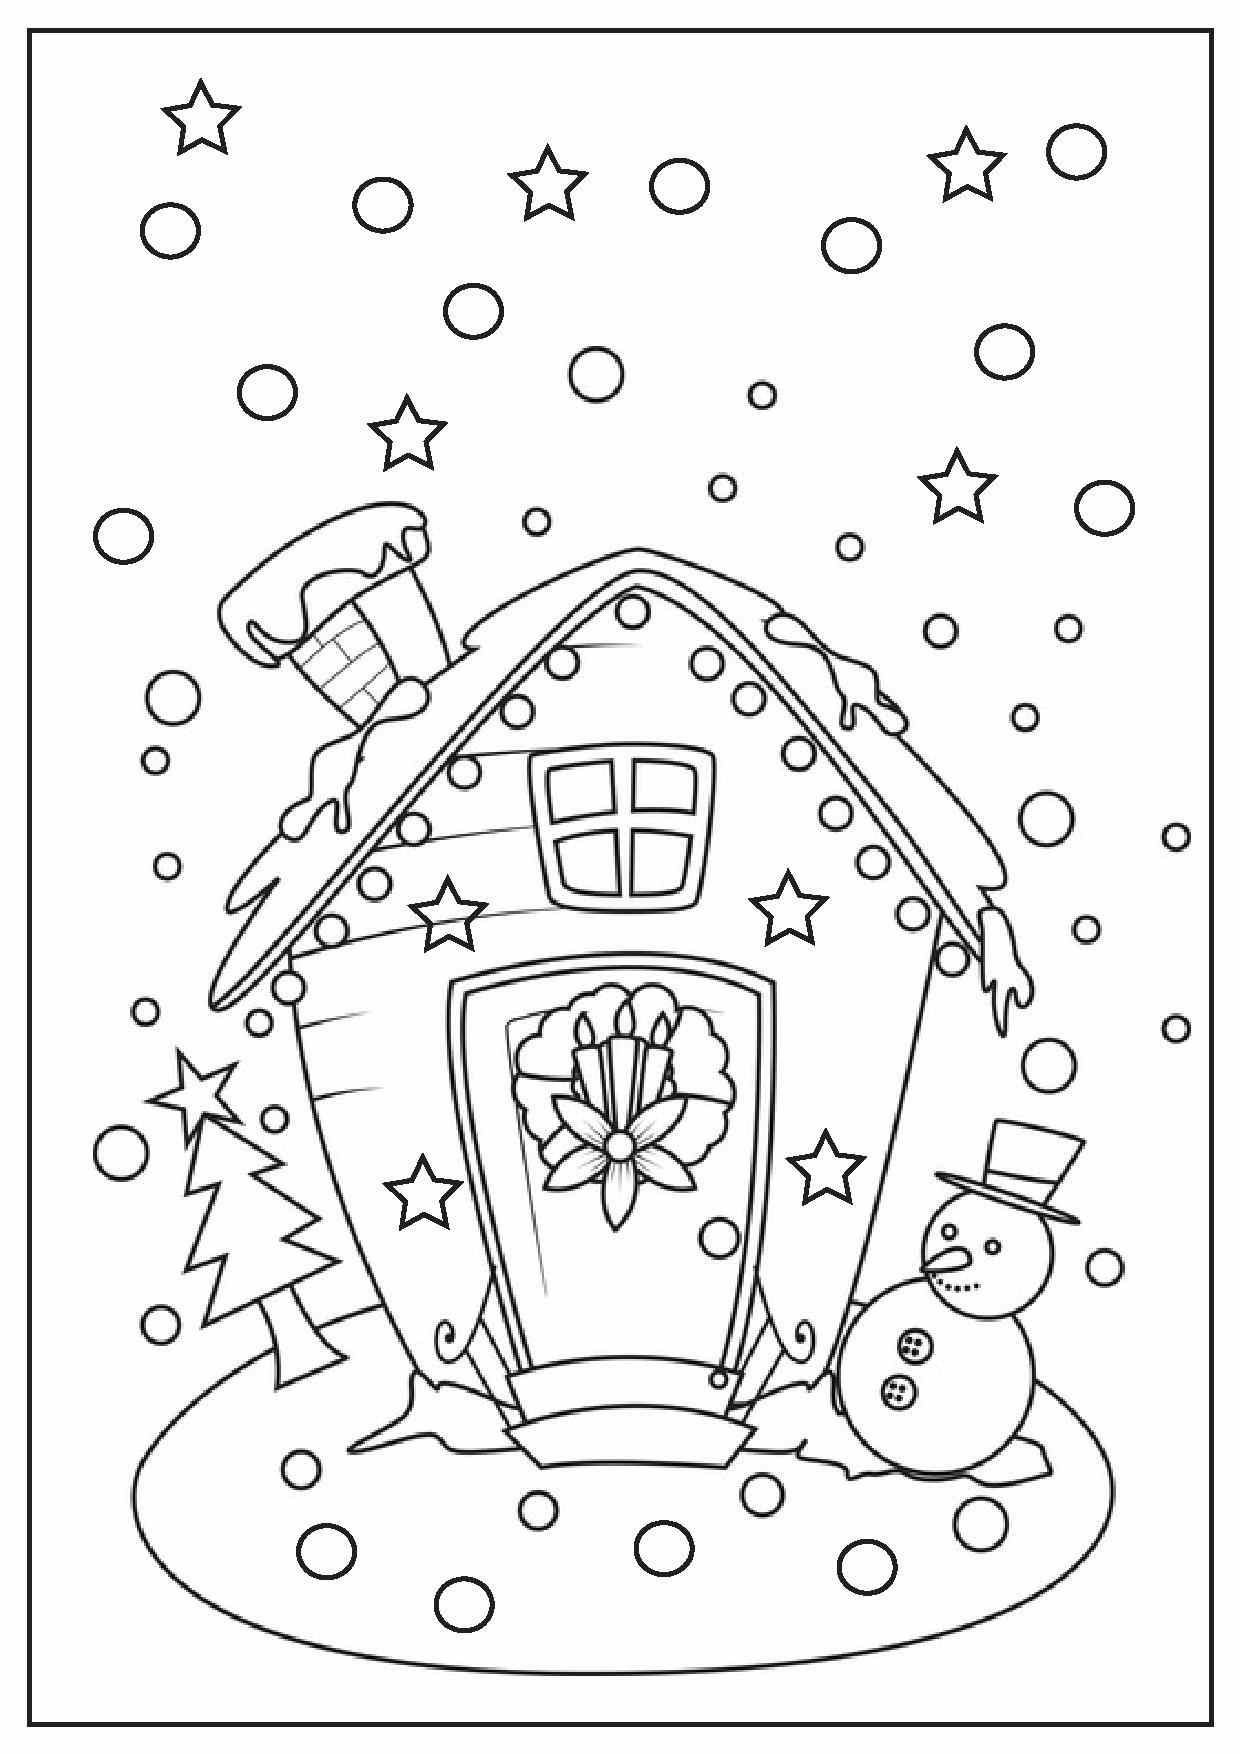 Christmas Coloring Pages For 8 Year Olds With Printable